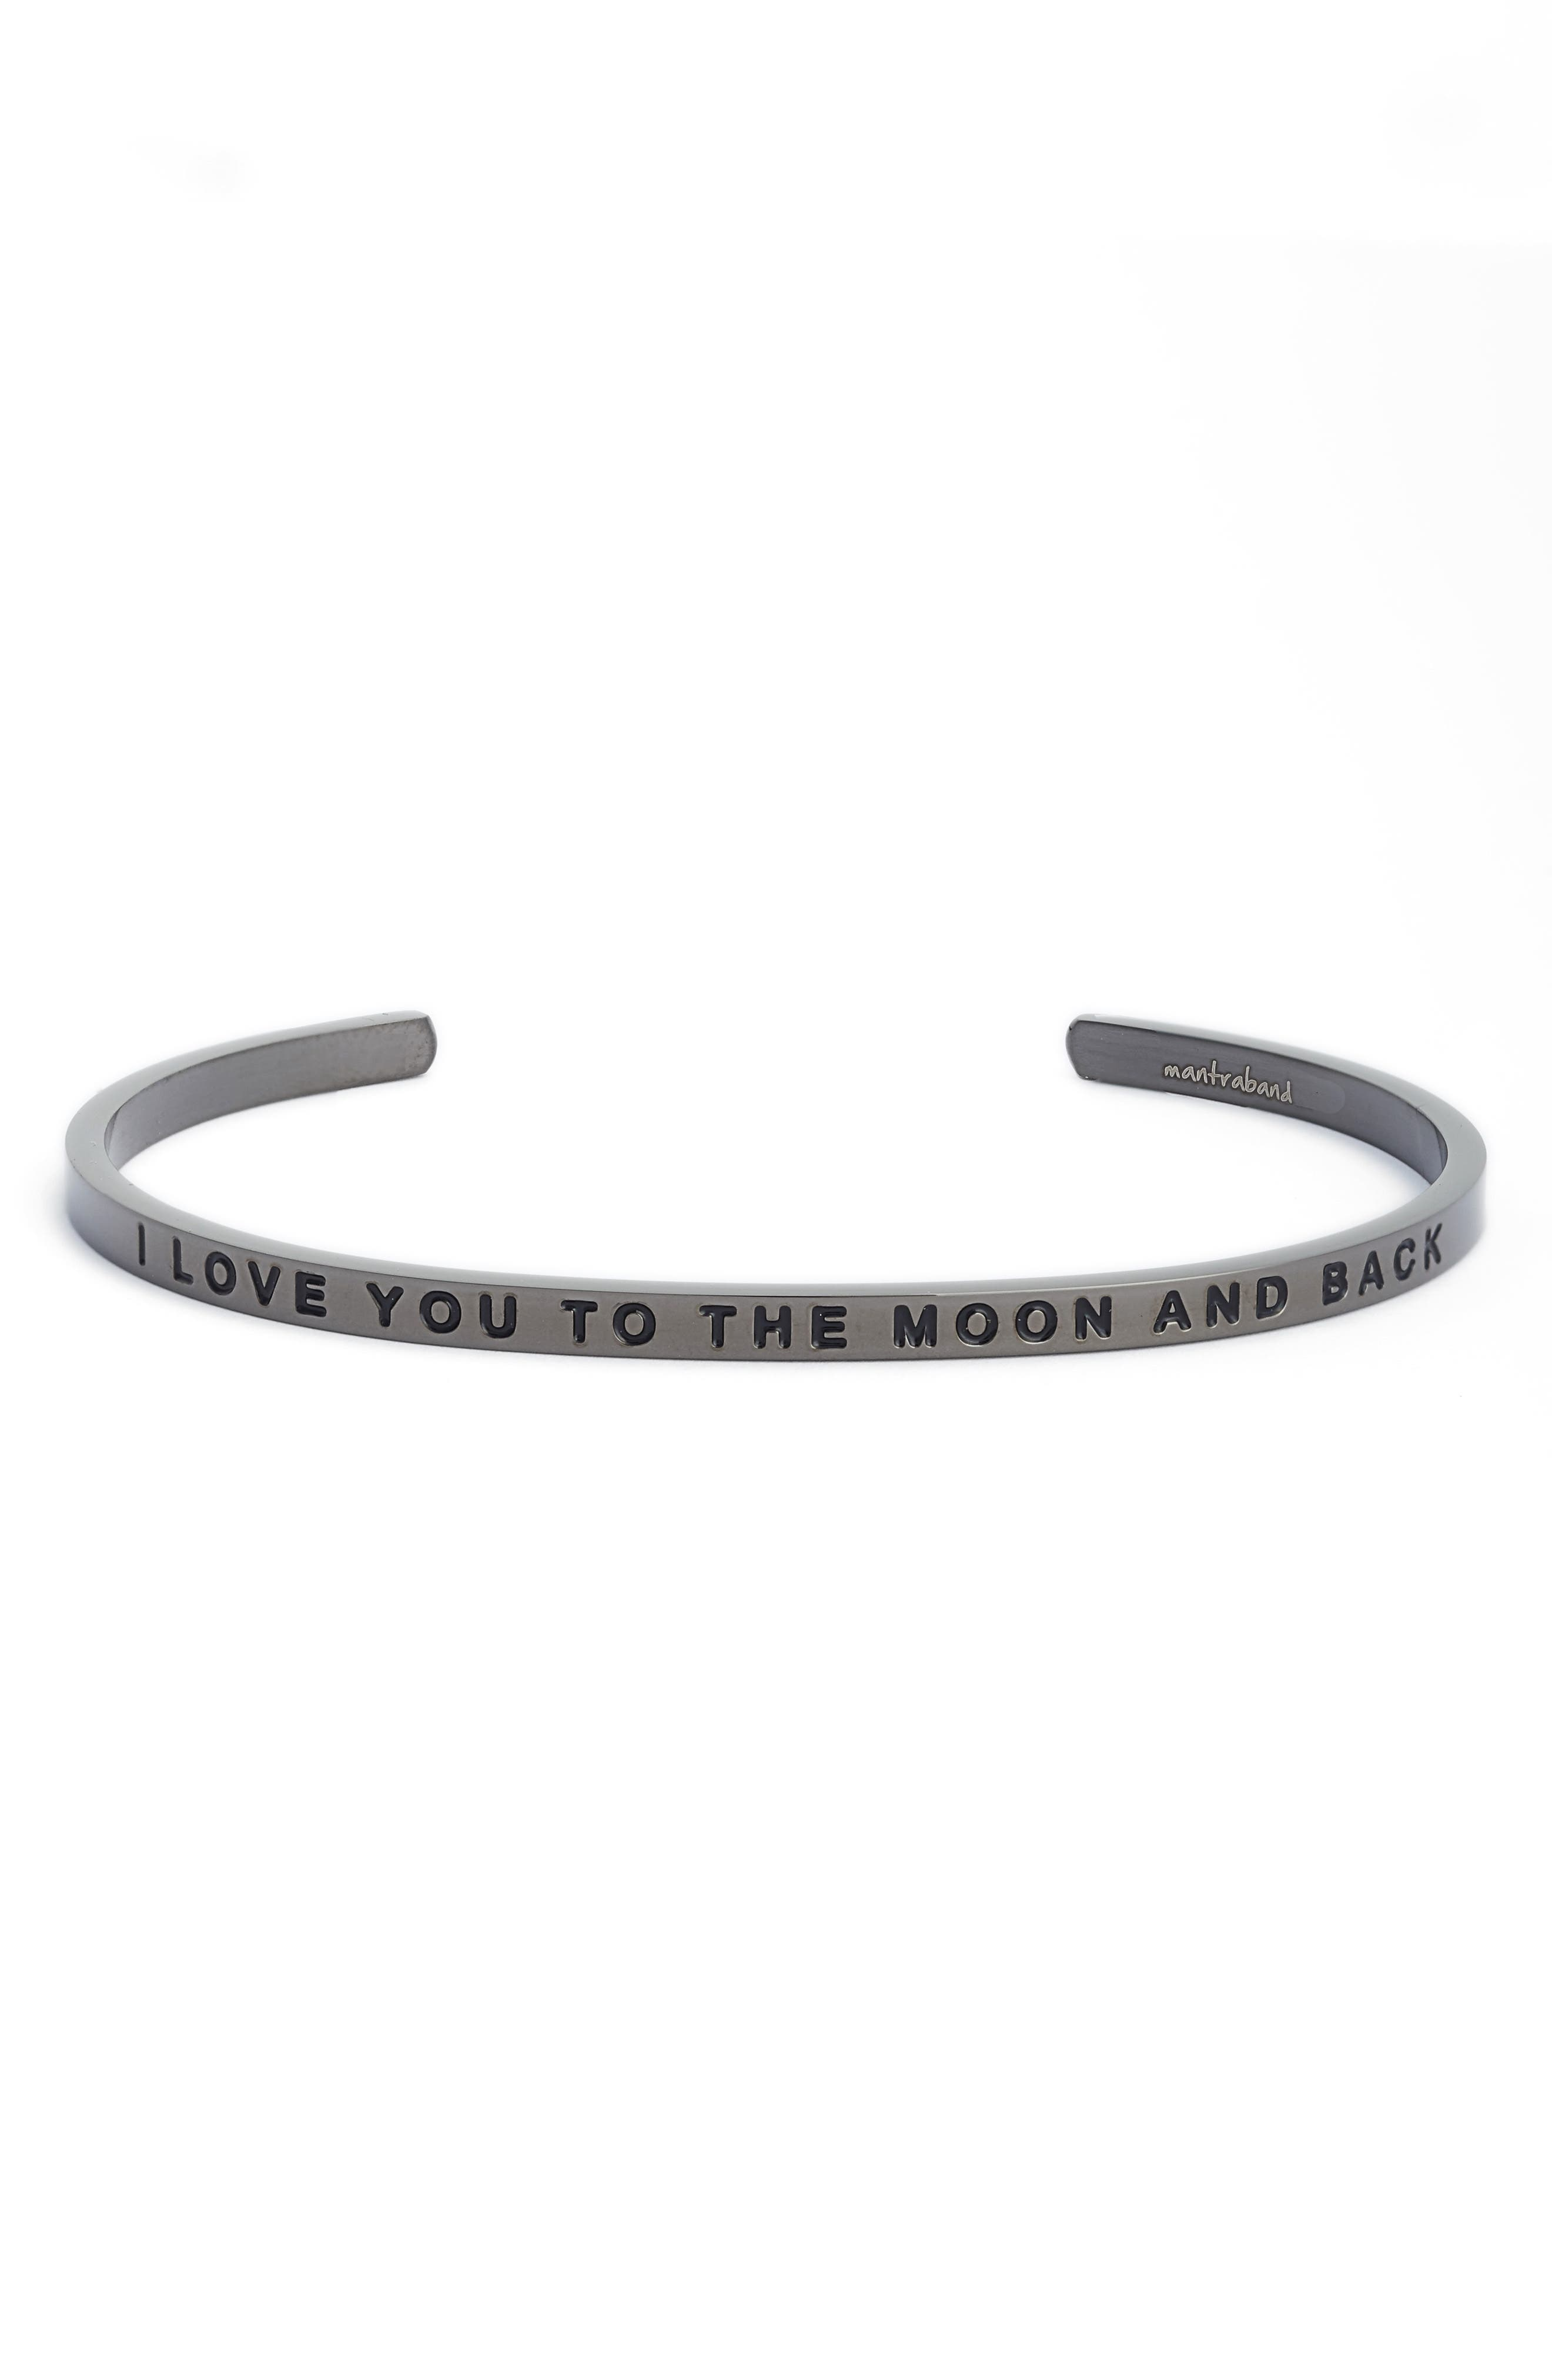 I Love You to the Moon and Back Cuff Bracelet,                         Main,                         color, Moon Gray